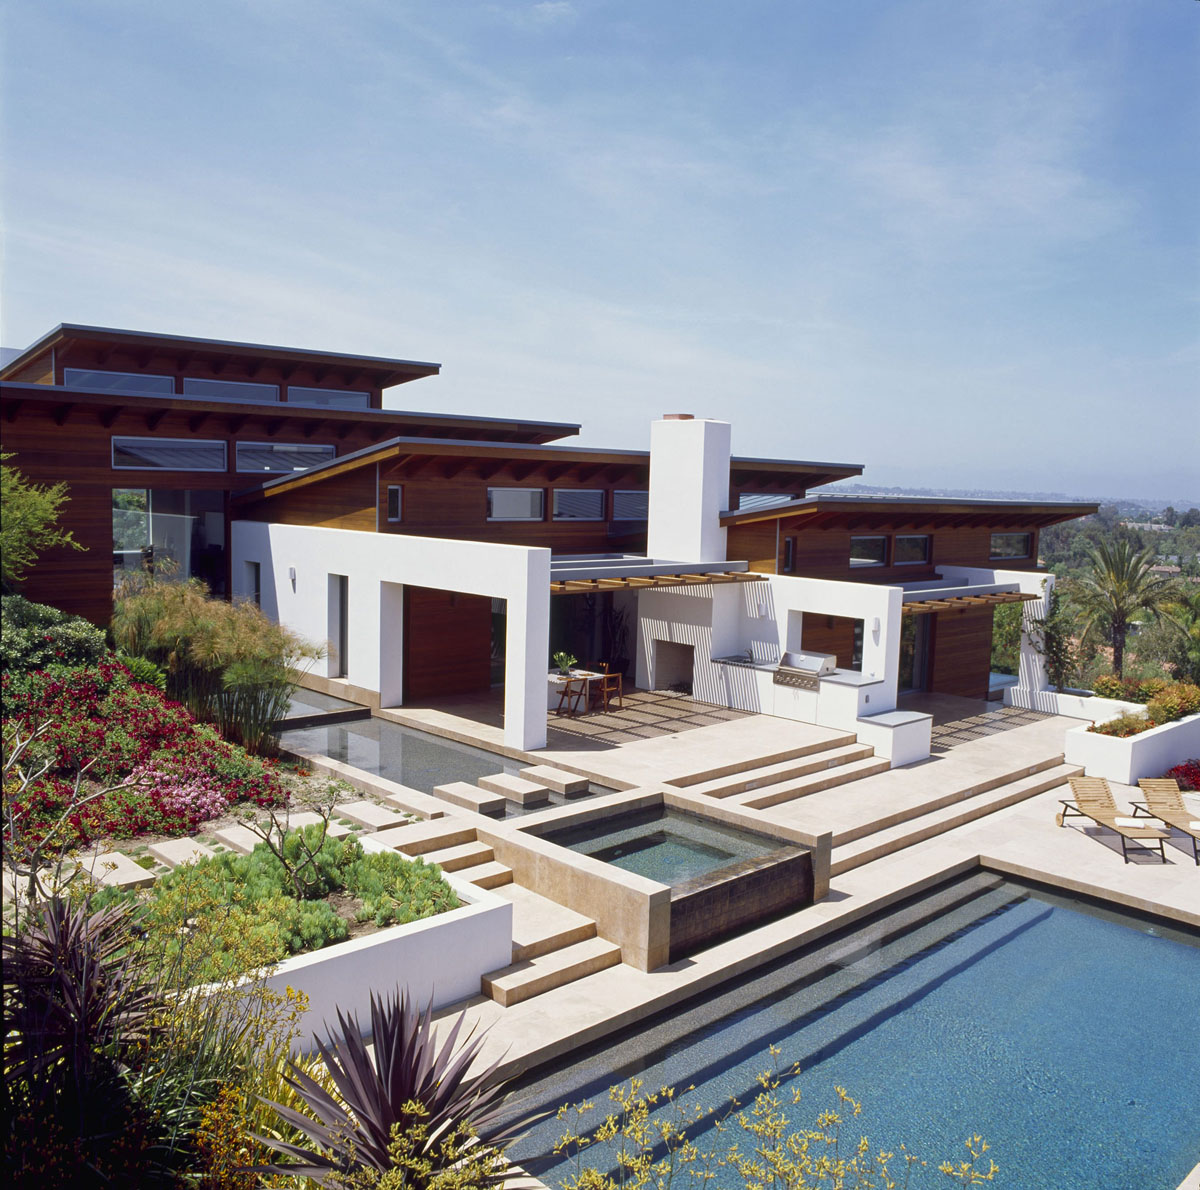 California Modern Architecture Timeless Architectural Estate In Rancho Santa Fe